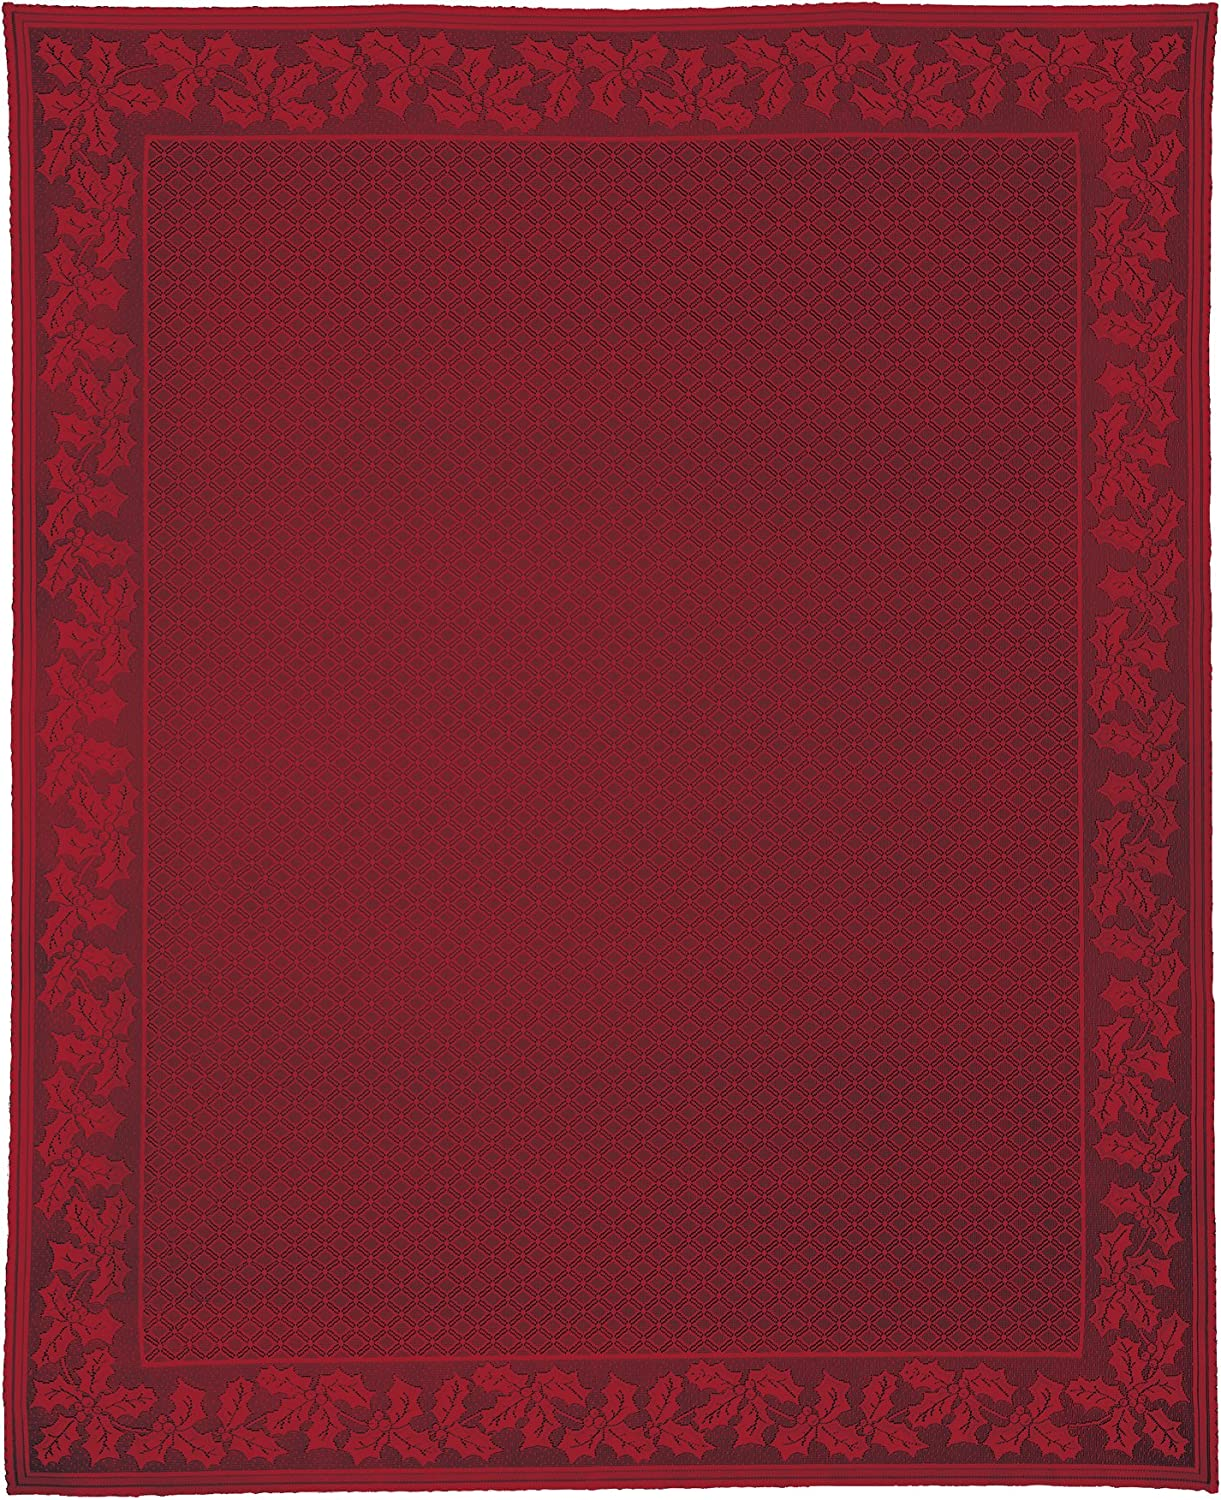 Heritage Lace Holly Vine Rectangle Tablecloth, 70  by 90 , Red